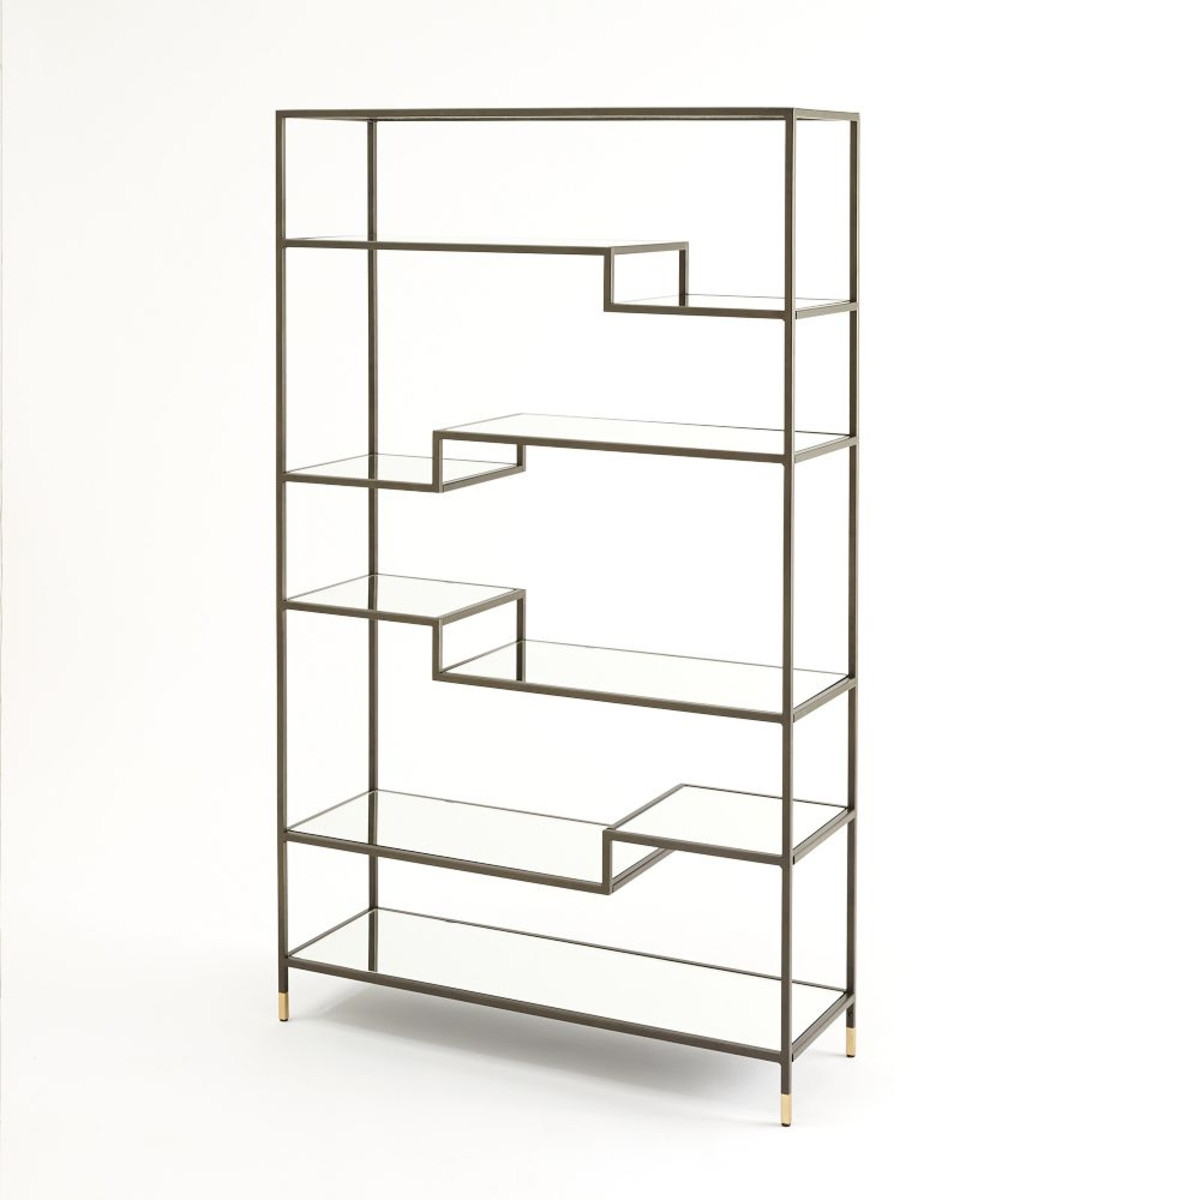 Bookcases Ideas: Furniture & Home Decor Search: 4 Tier Bookcase With Regard To Latest West Elm Bookcases (View 7 of 15)